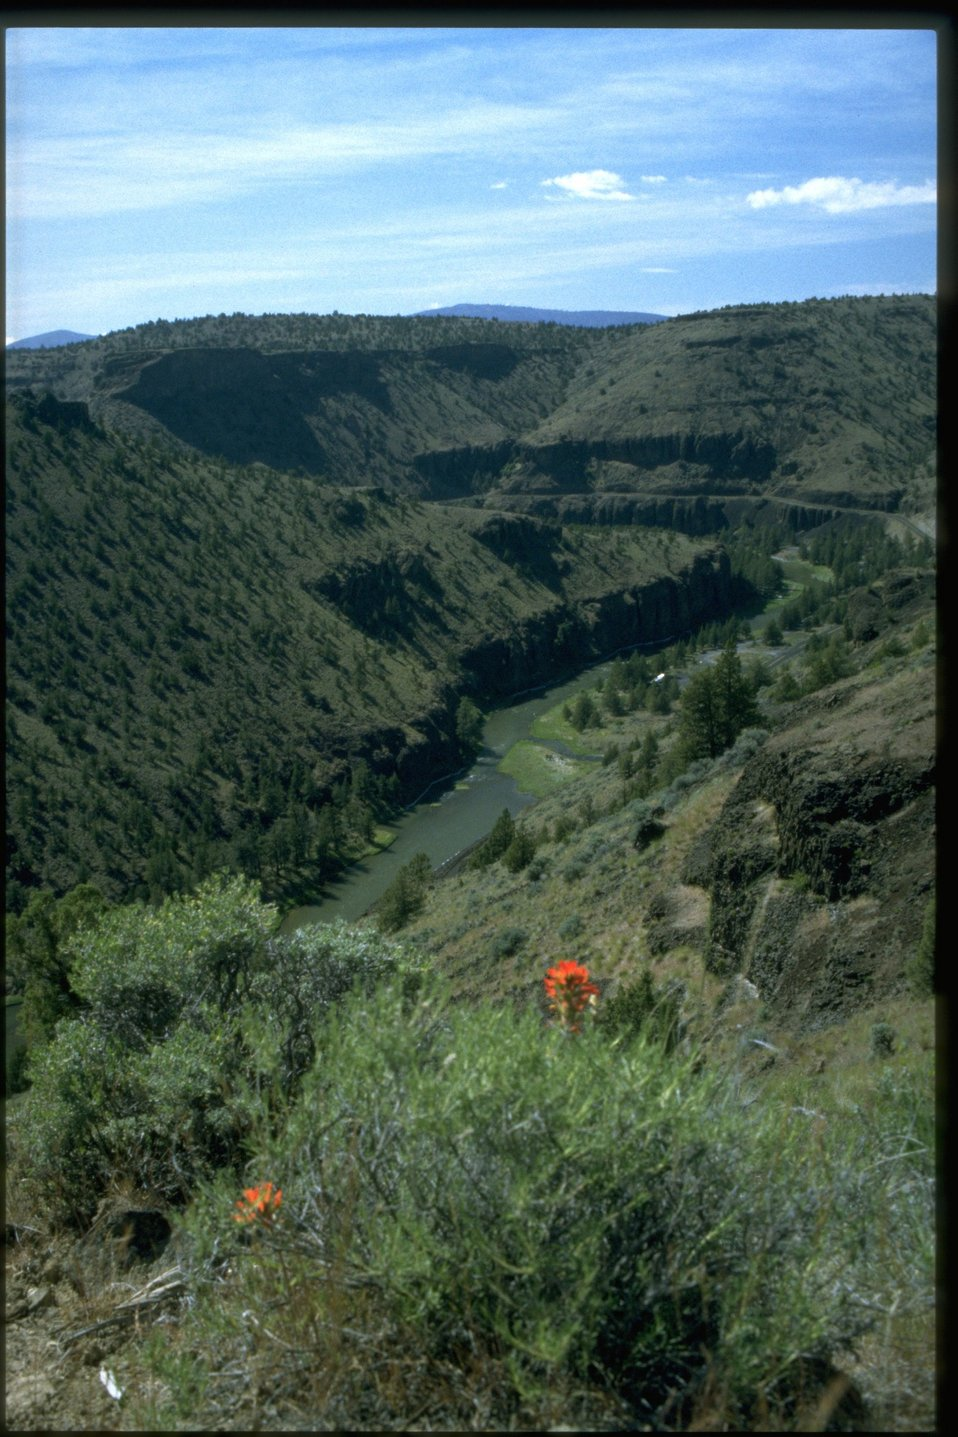 Lower Crooked Wild and Scenic River from Chimney Rock Trail.